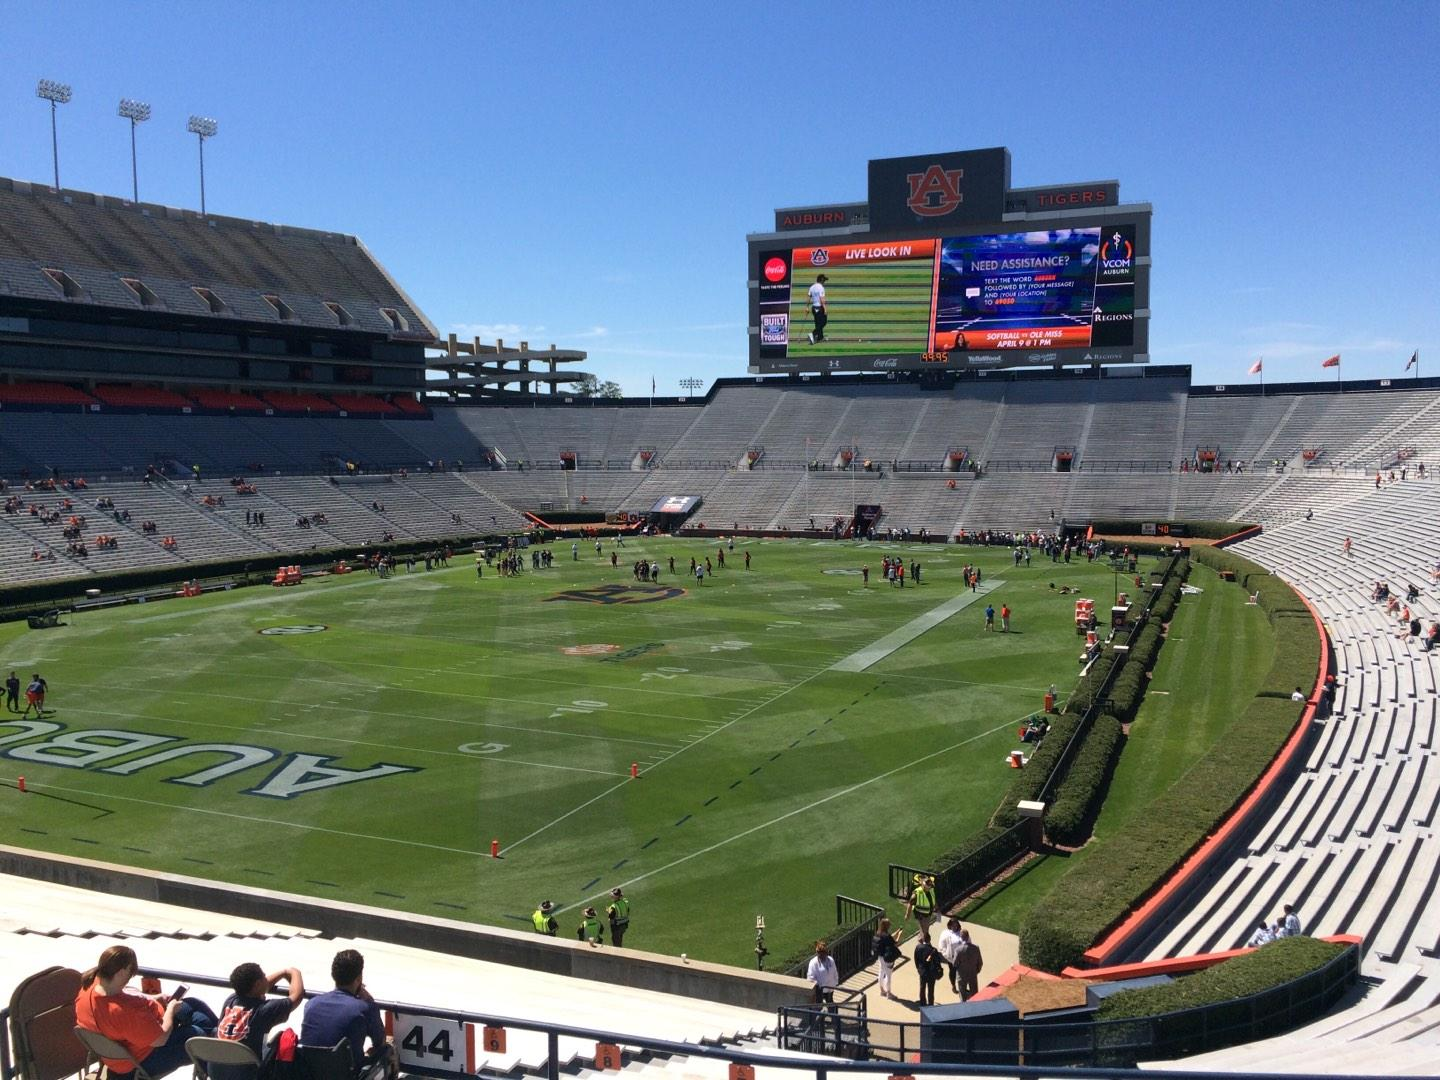 Jordan-Hare Stadium Section 44 Row 34 Seat 5